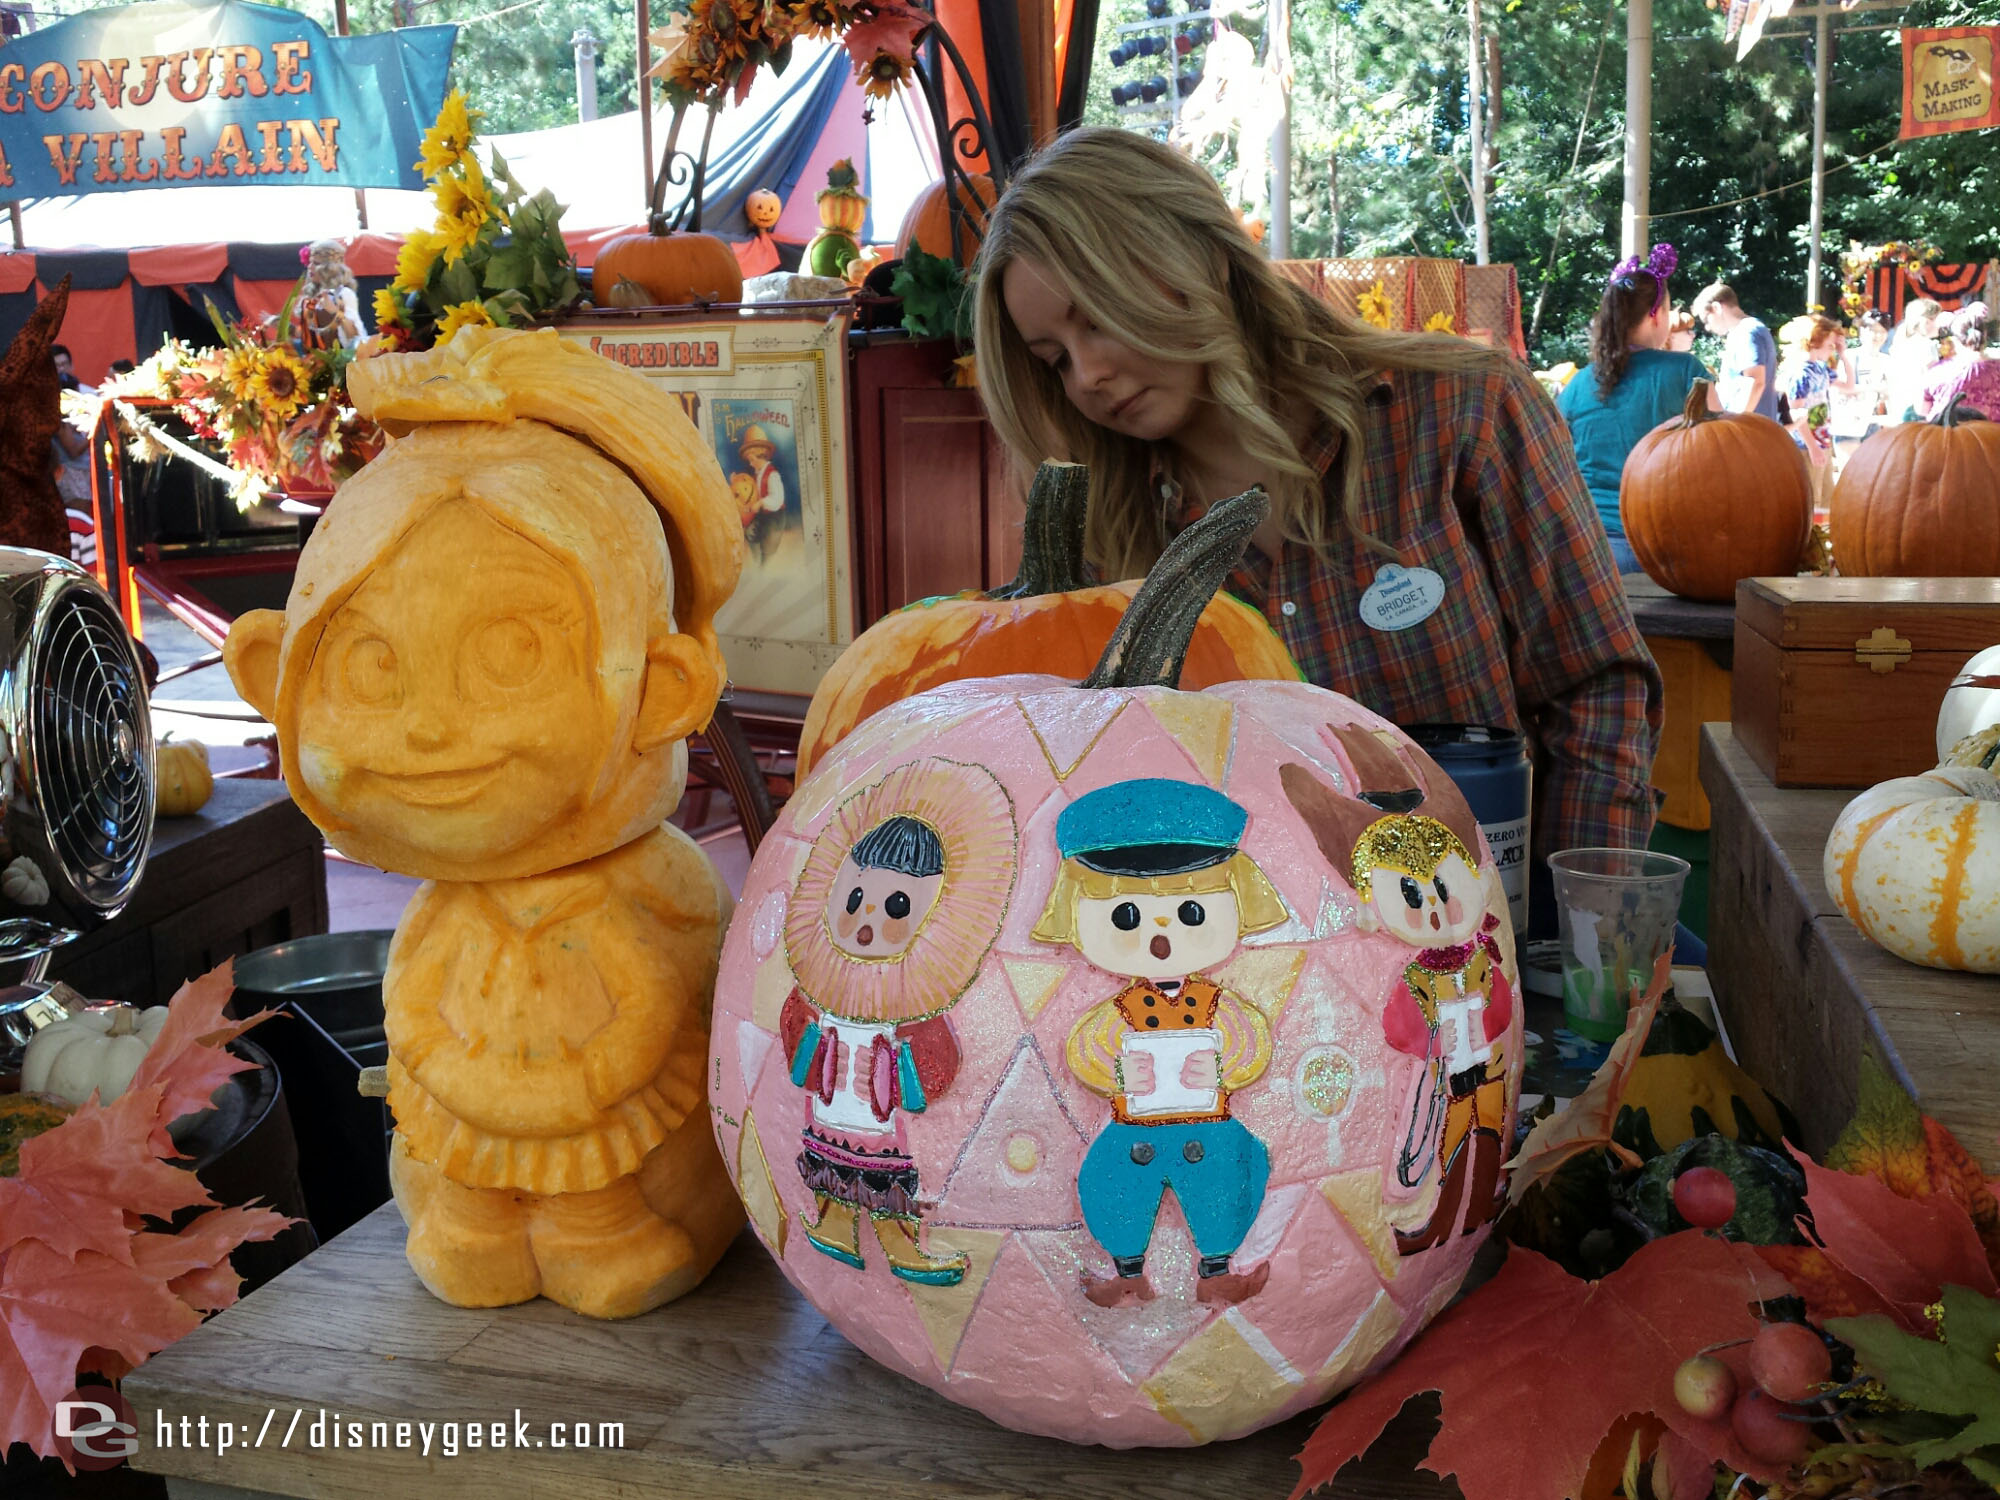 Small World Pumpkin the CM in the background created it #HalloweenTime #Disneyland